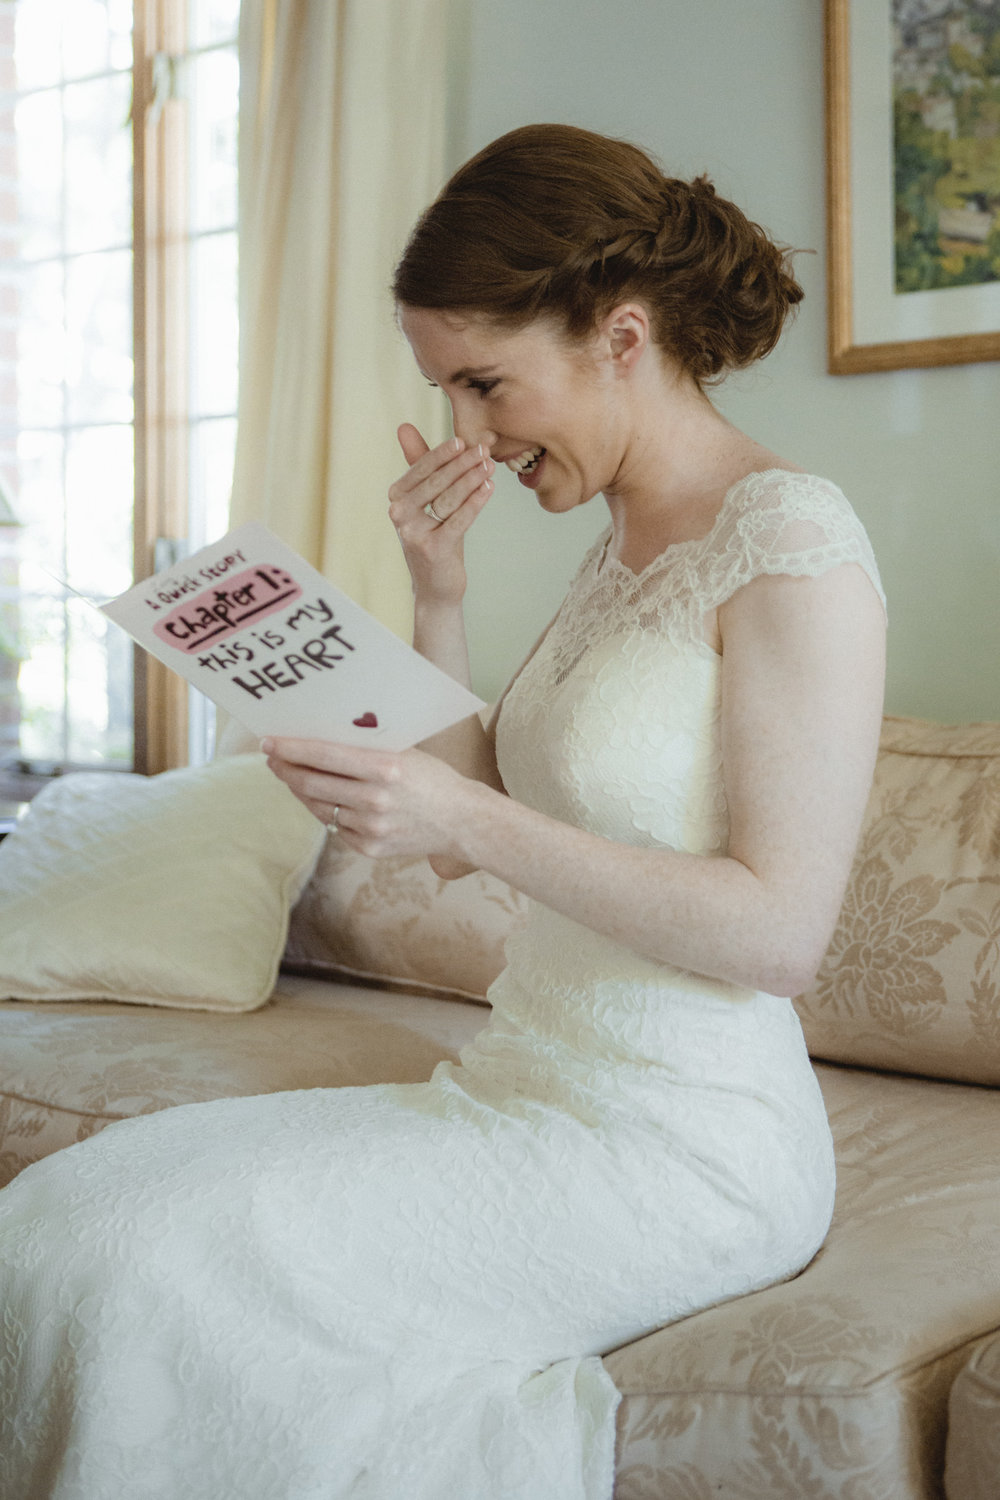 Bride laughs while reading card from her husband-to-be - Estate at Florentine Gardens wedding - Hudson Valley Wedding - Kelsey & Anish's wedding - Amy Sims Photography